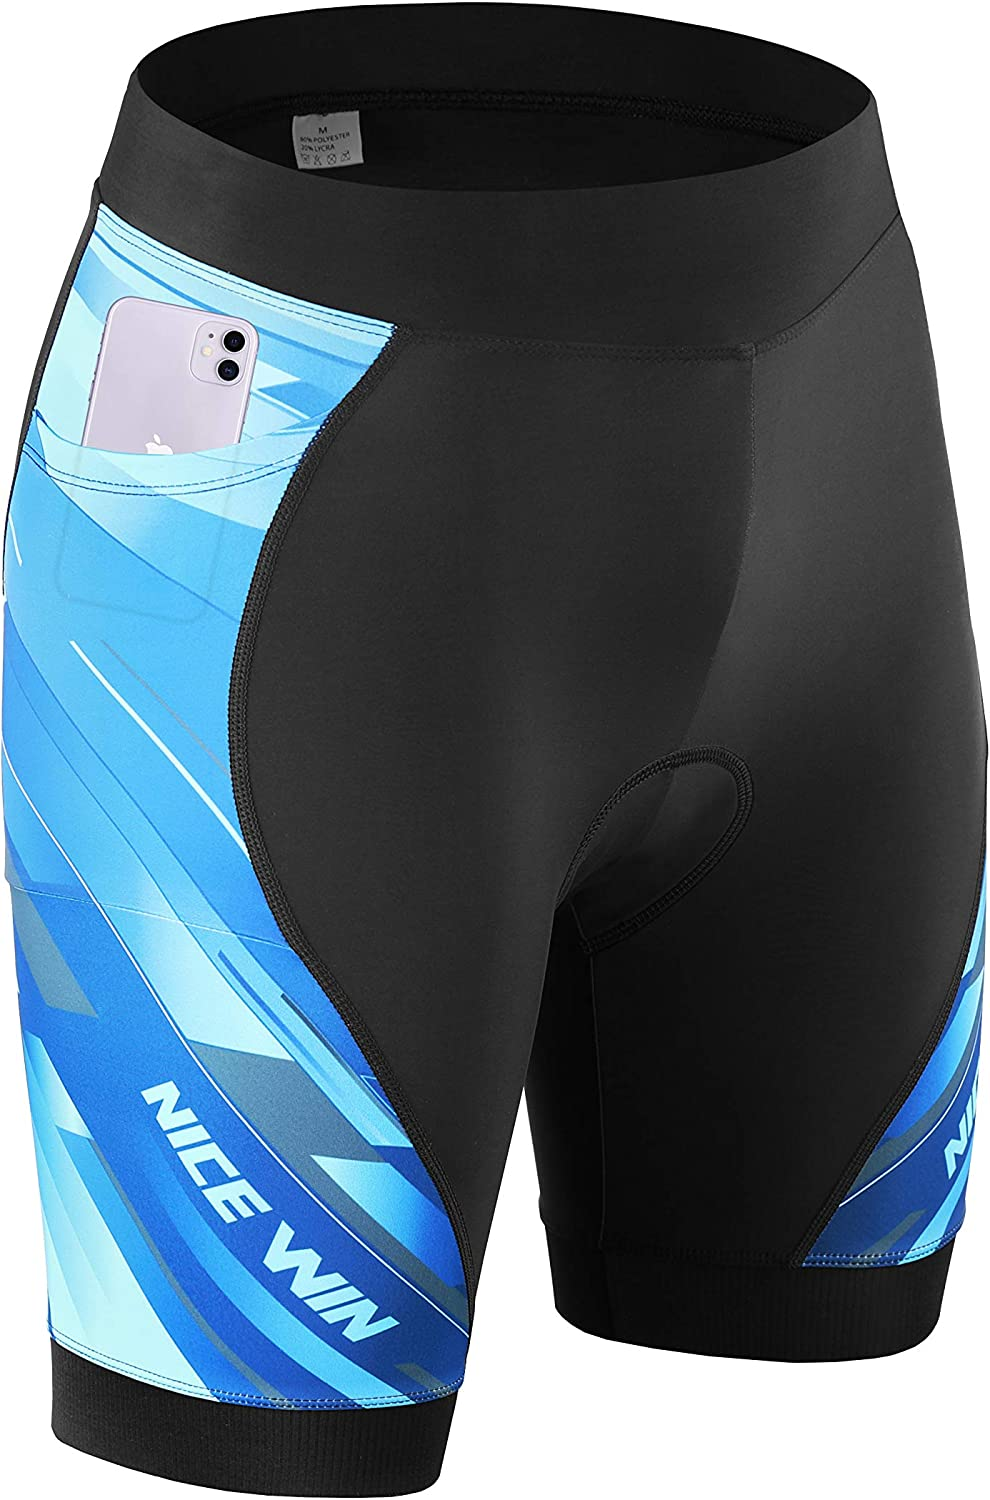 Men/'s Womens Cycling Underwear Gel 3D Padded Bicycle Riding Workout Shorts Pants